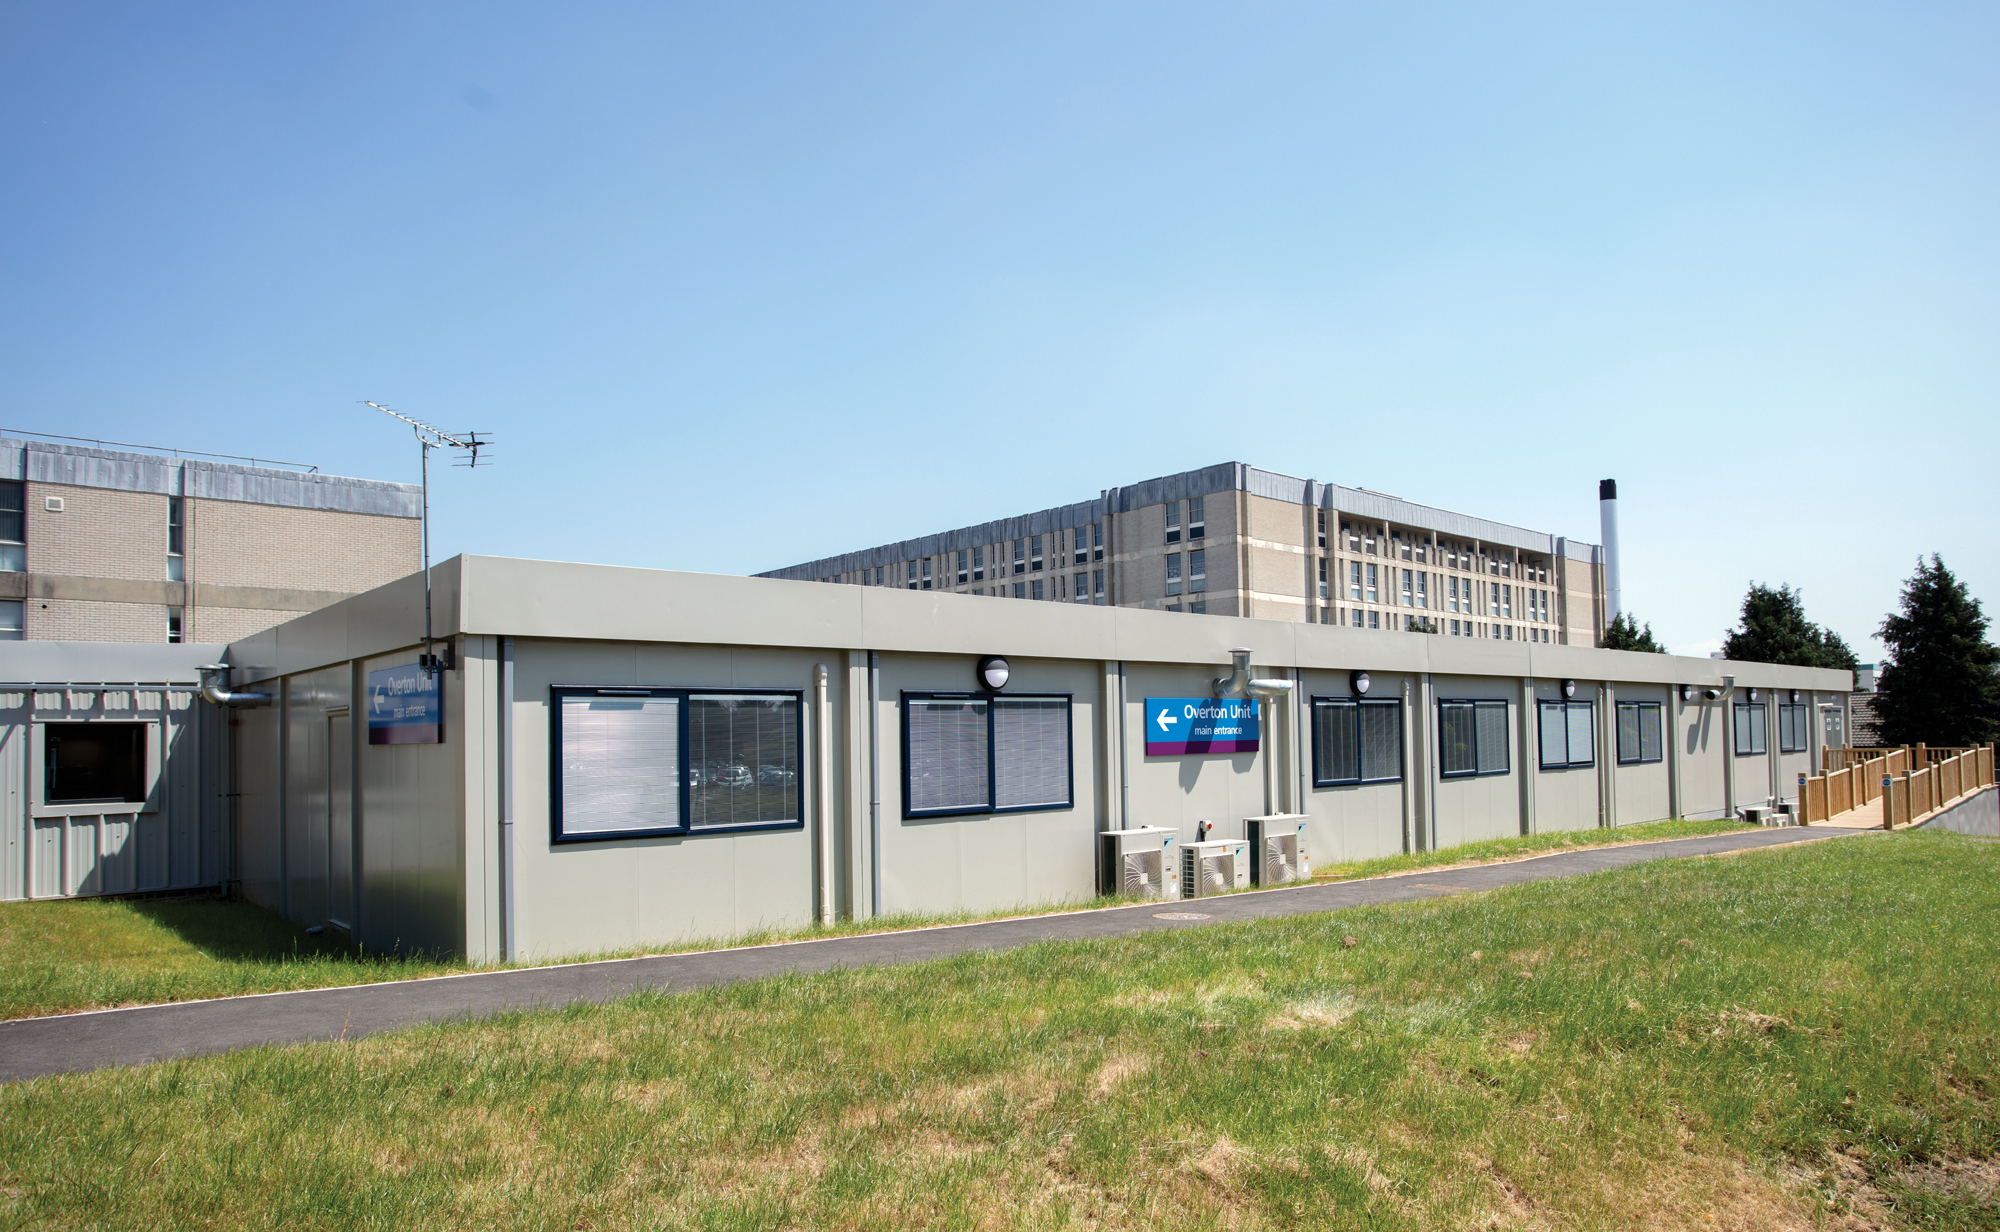 Portakabin eases pressure on hospital services in Hampshire